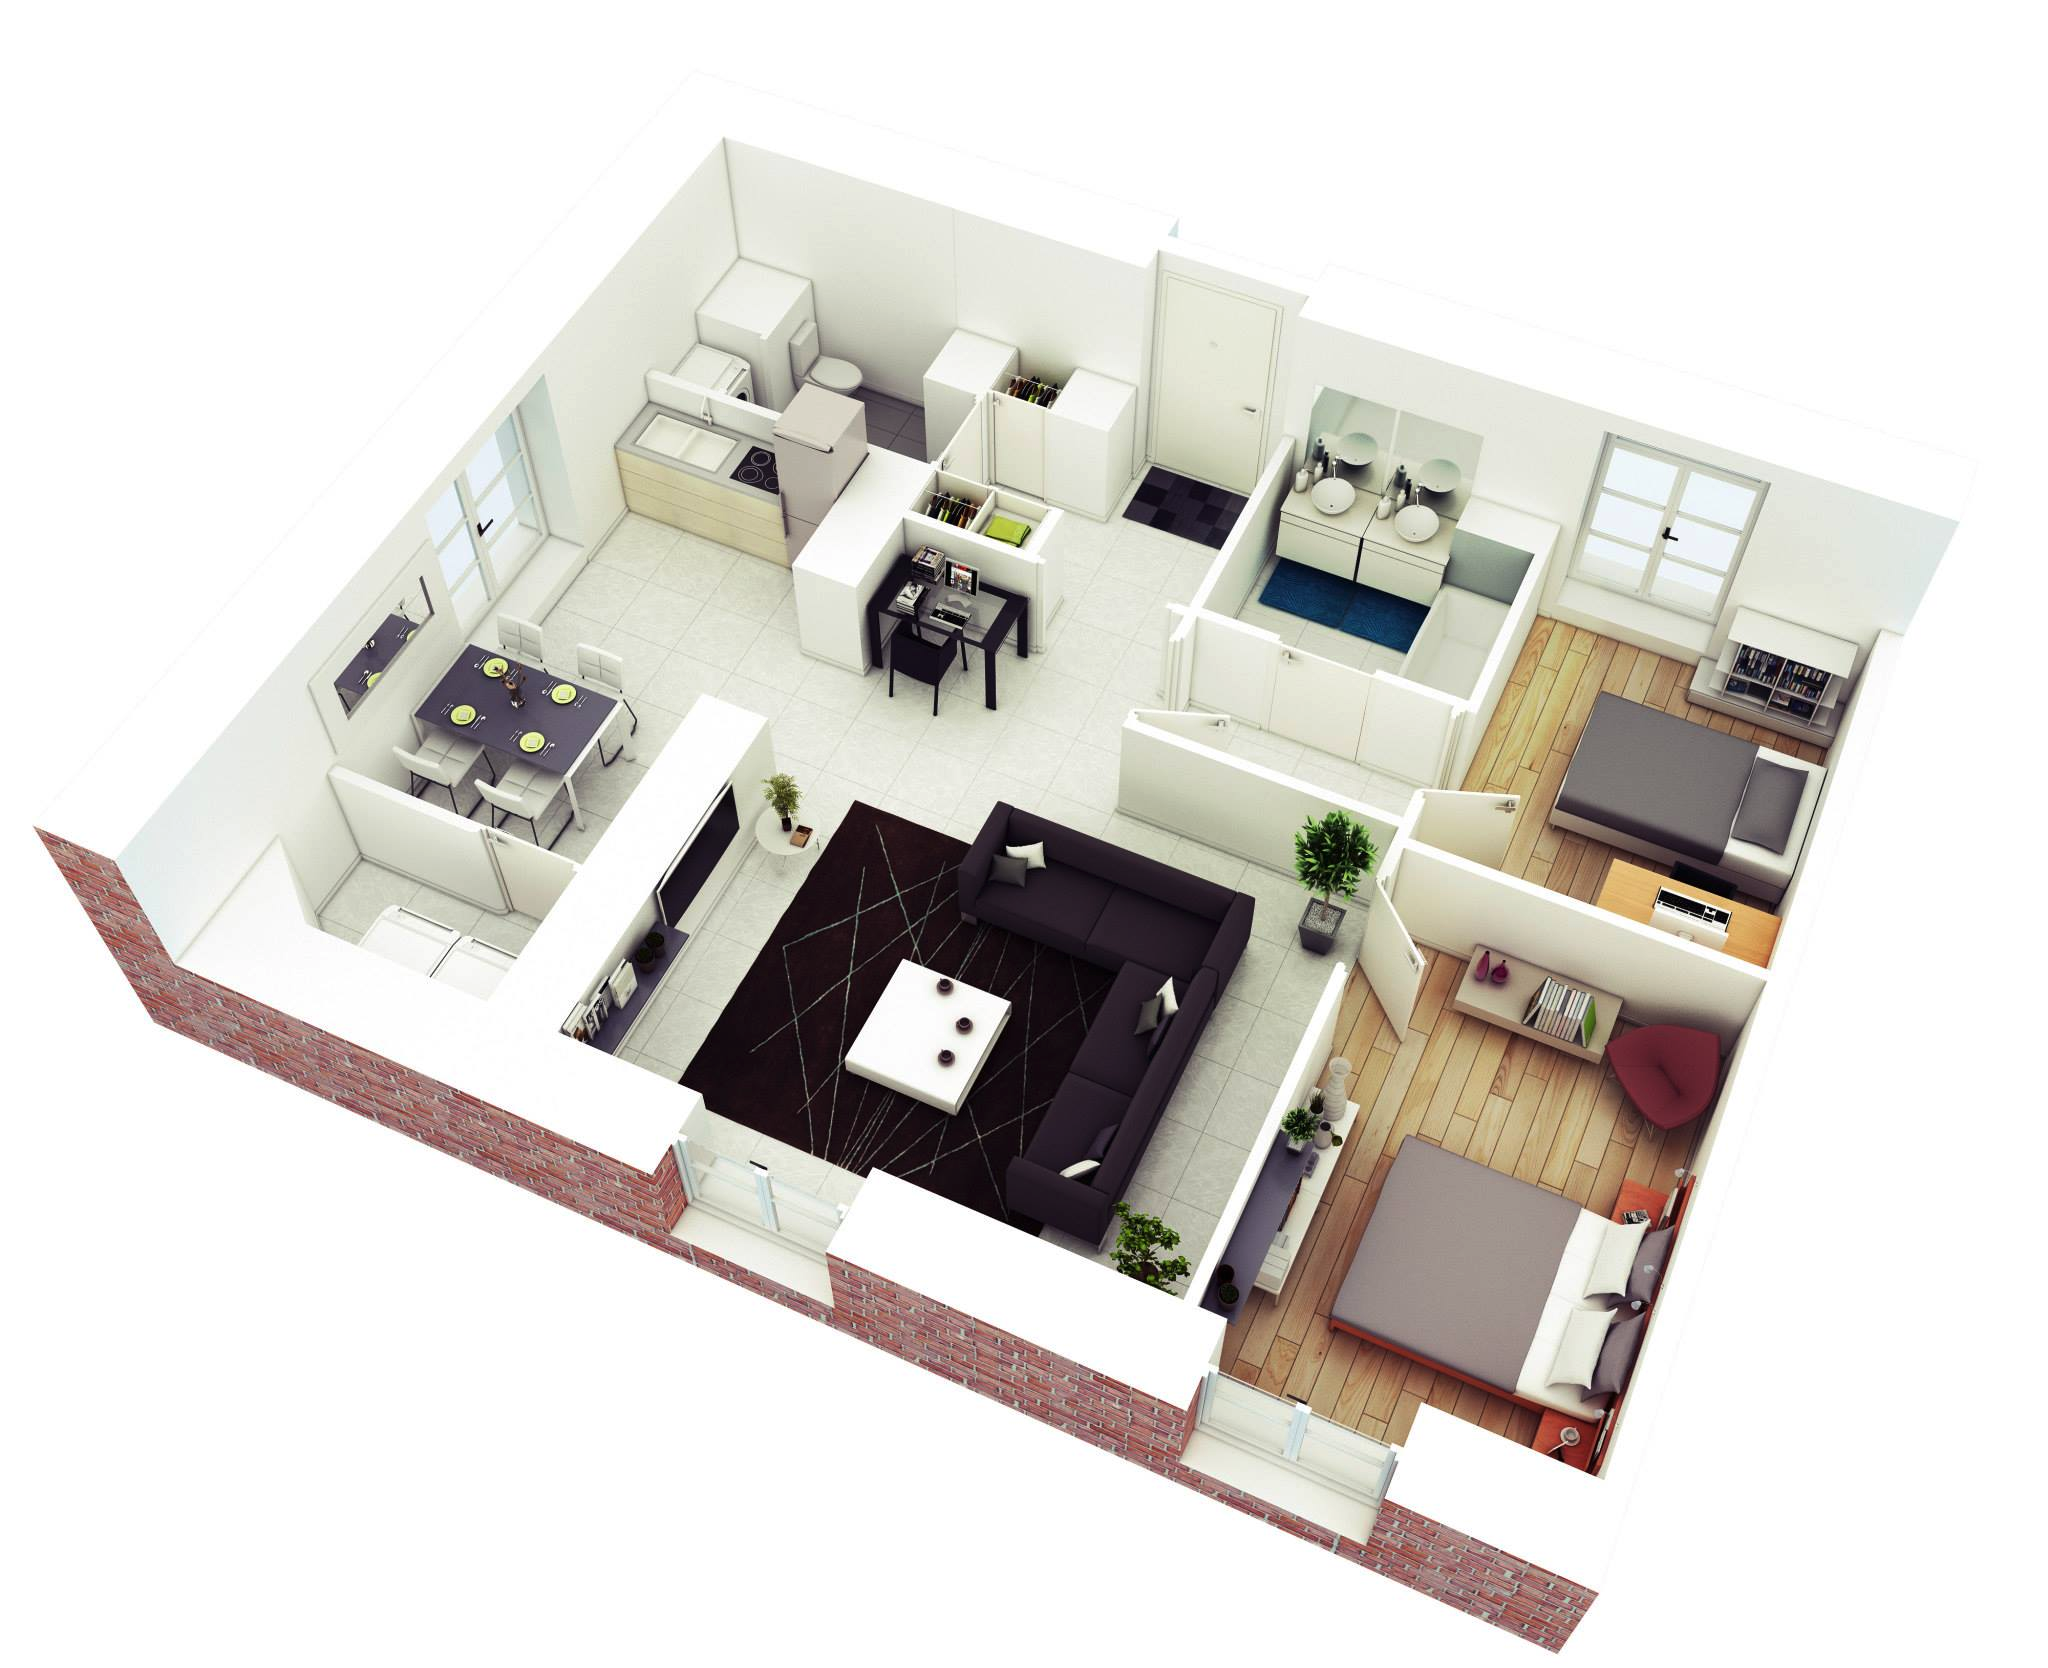 Open Neutral Apartment Png 2048 1668 2 Bedroom House Design Simple House Plans House Floor Plans